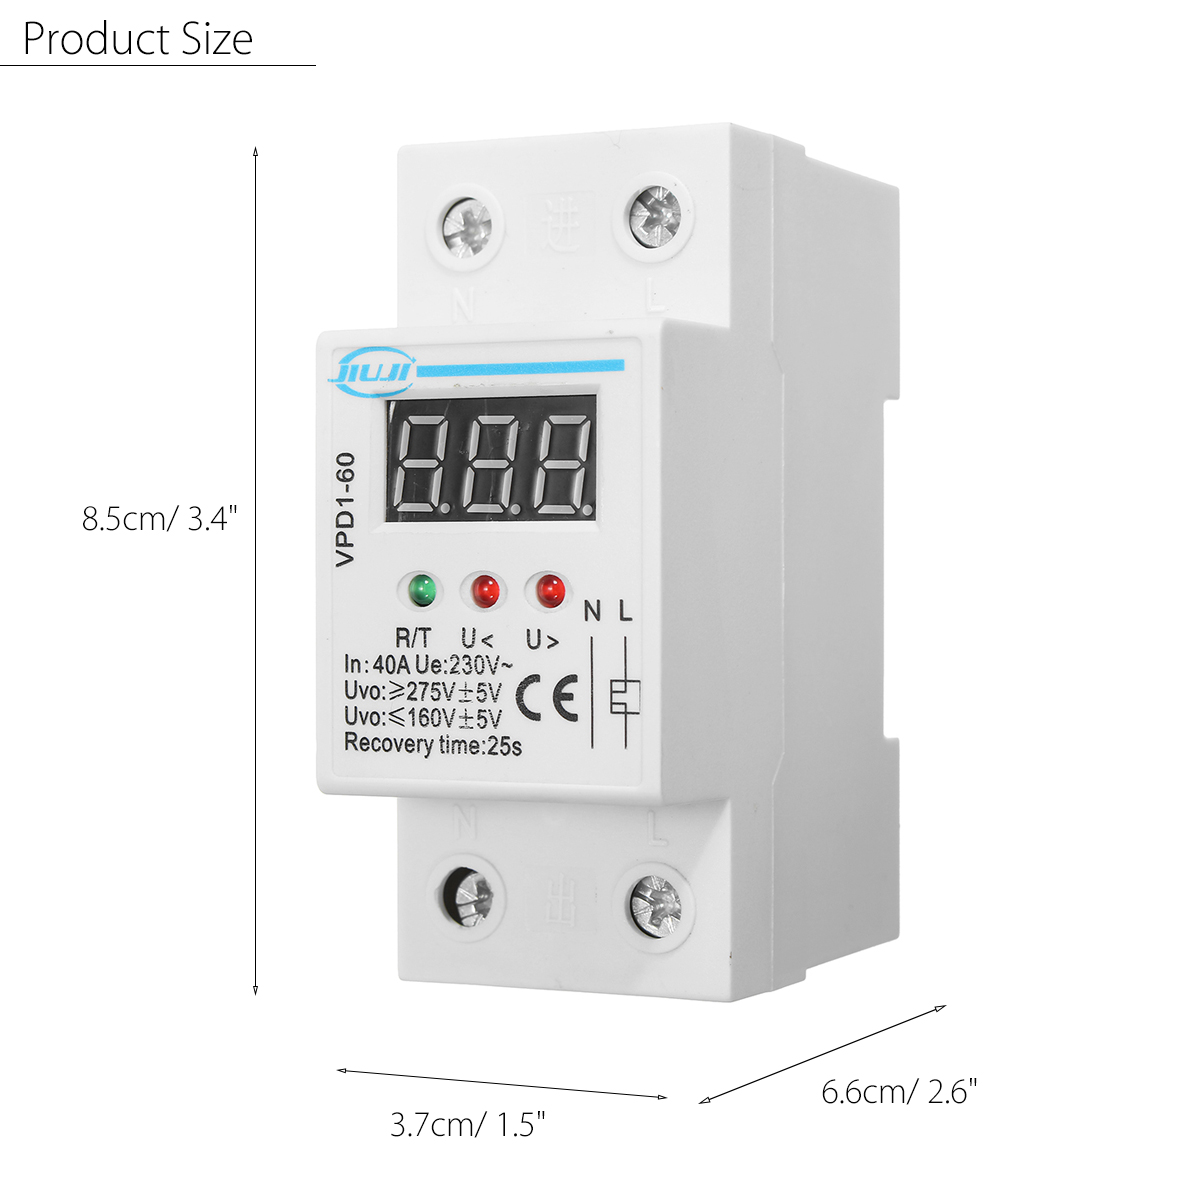 VPD1-60 40A 220V Over and Under Voltage Protective Device Automatic Reconnect Recovery